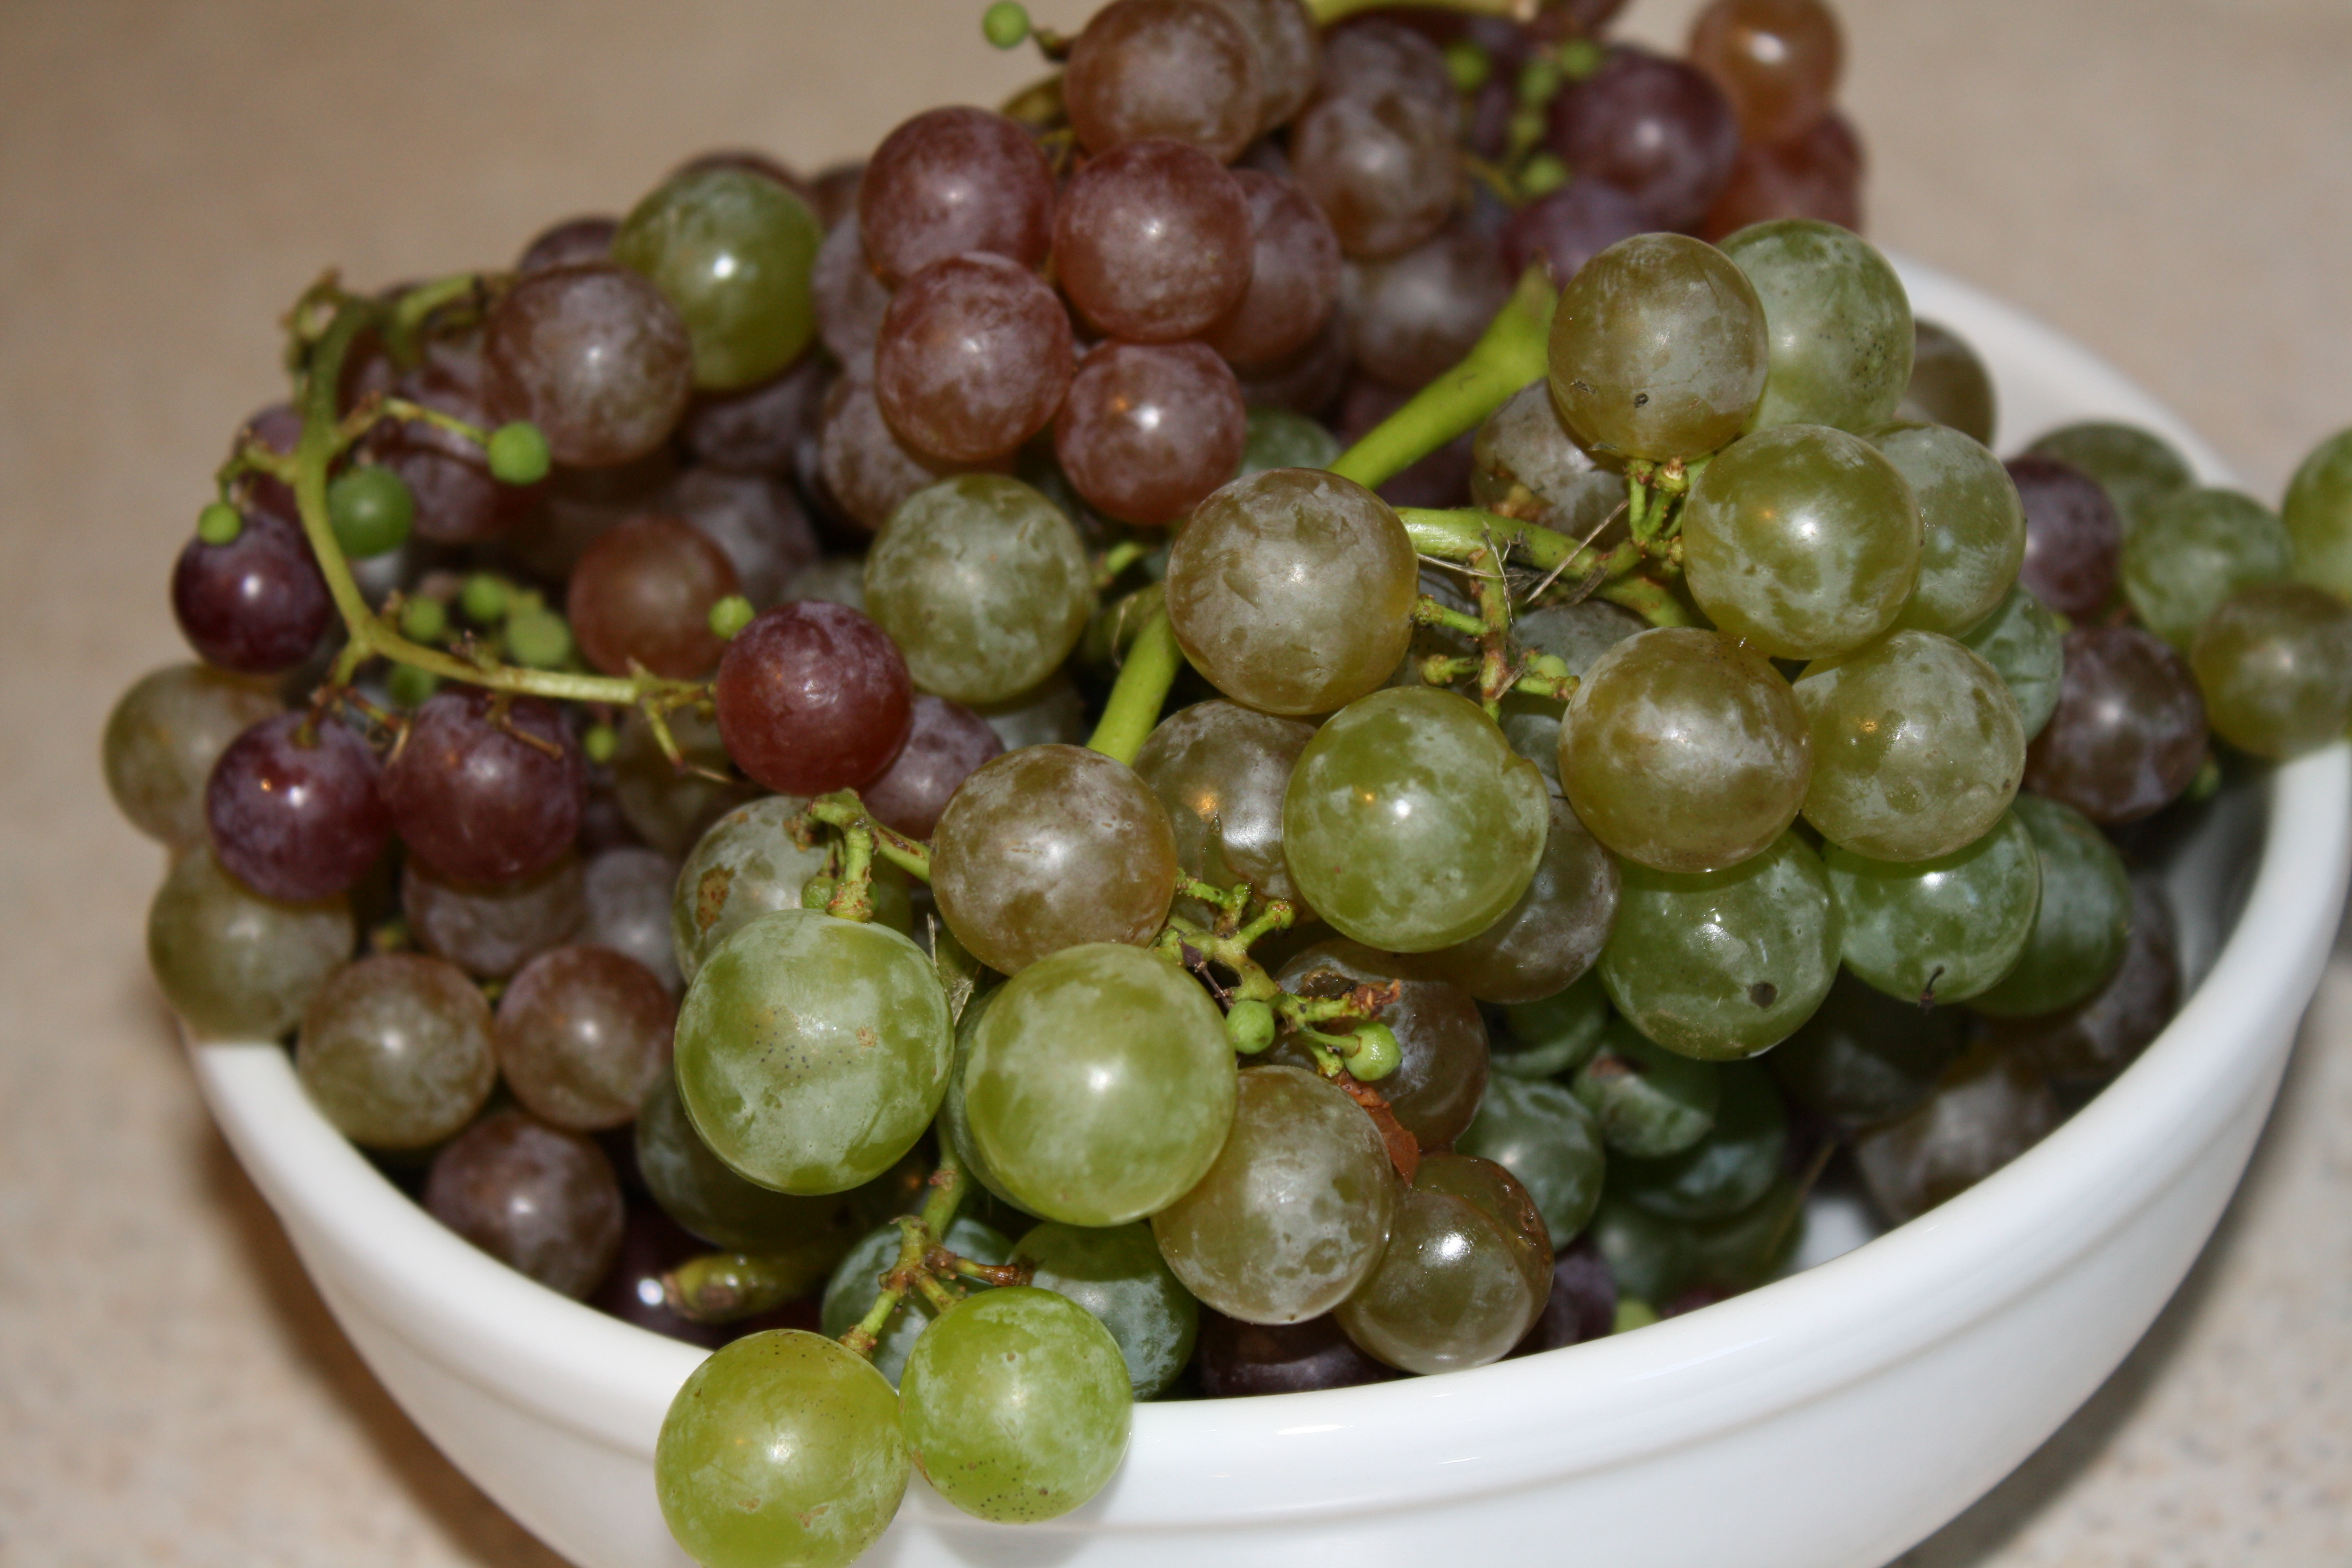 nutritional value of grapes pdf